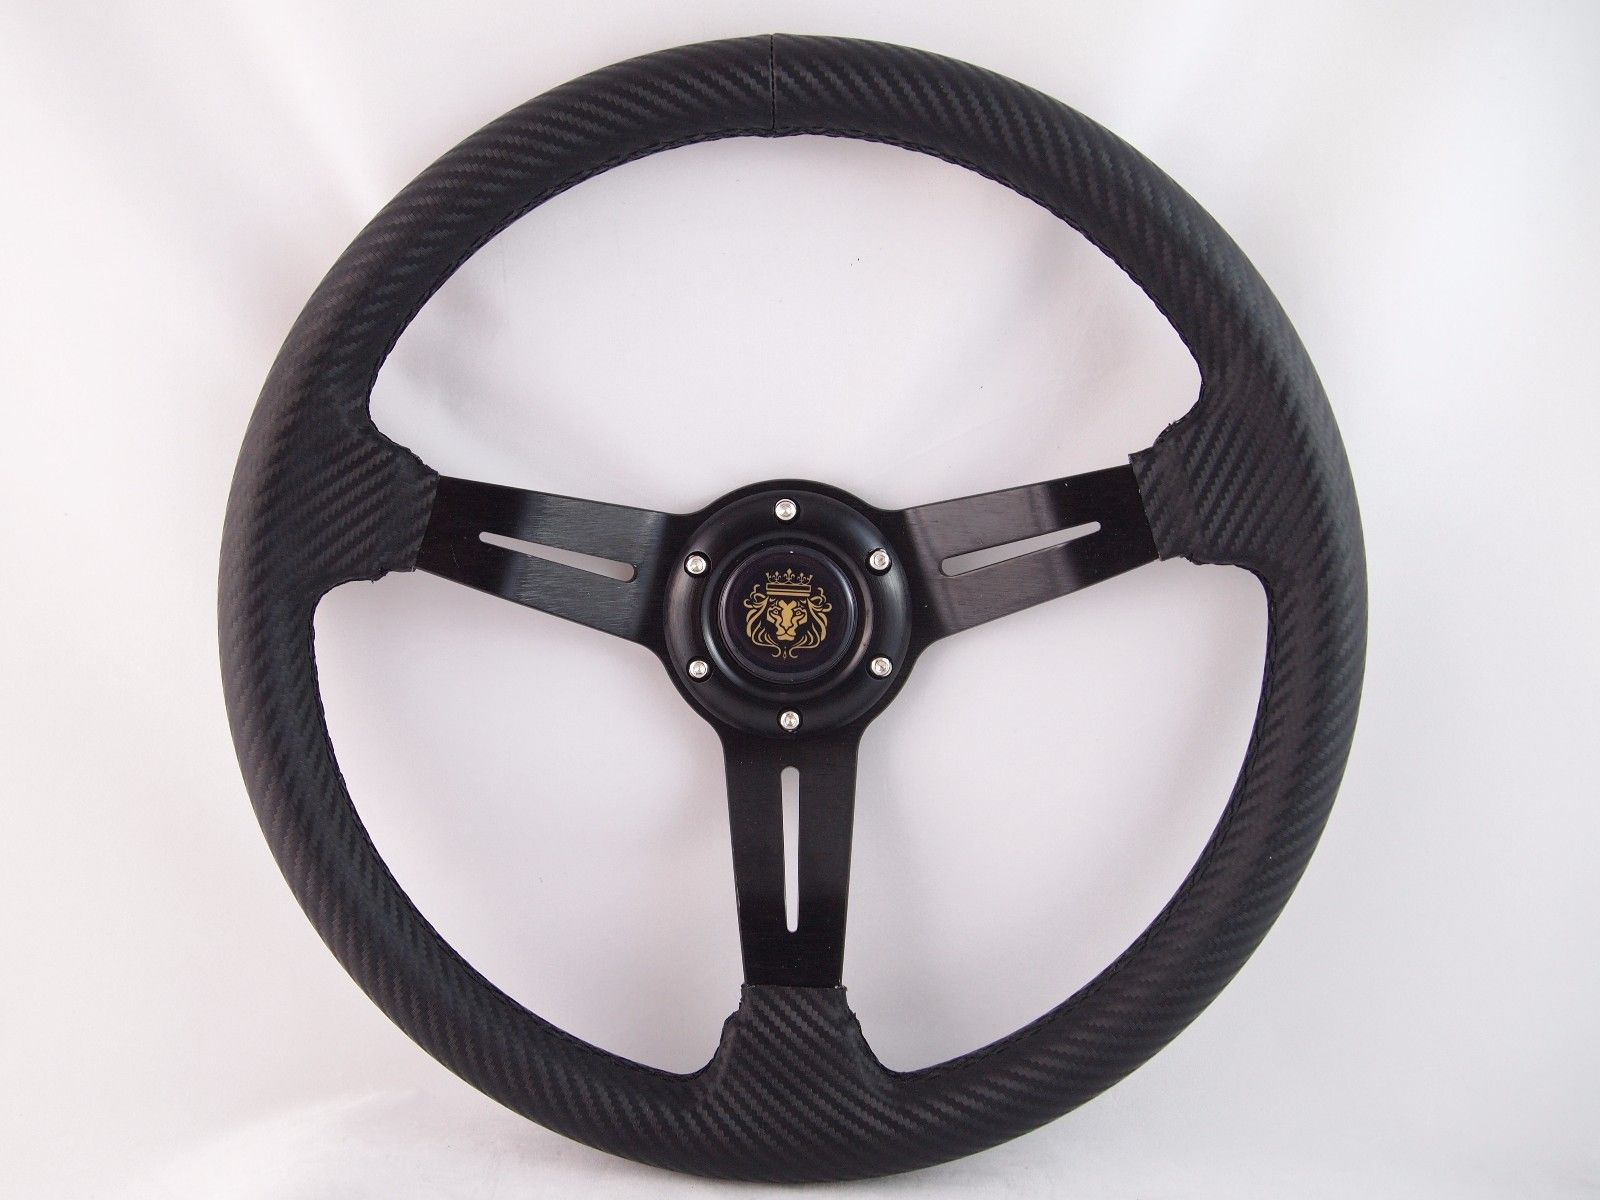 White Steering Wheel with Adapter for RZR 570 800 900 1000